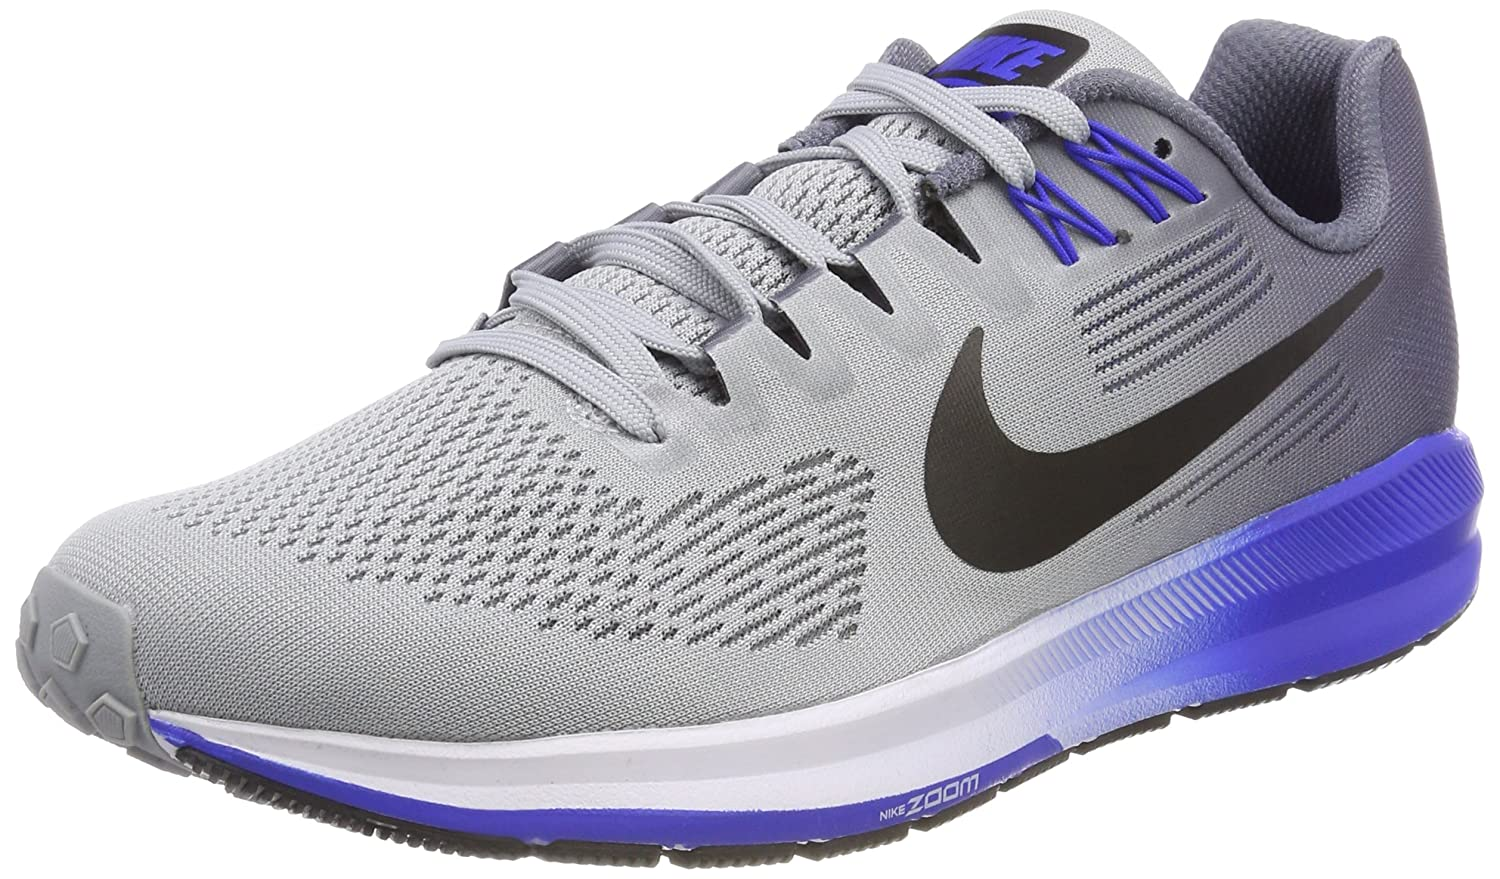 check out 1b5e7 14b51 Nike Men's Air Zoom Structure 21 Competition Running Shoes